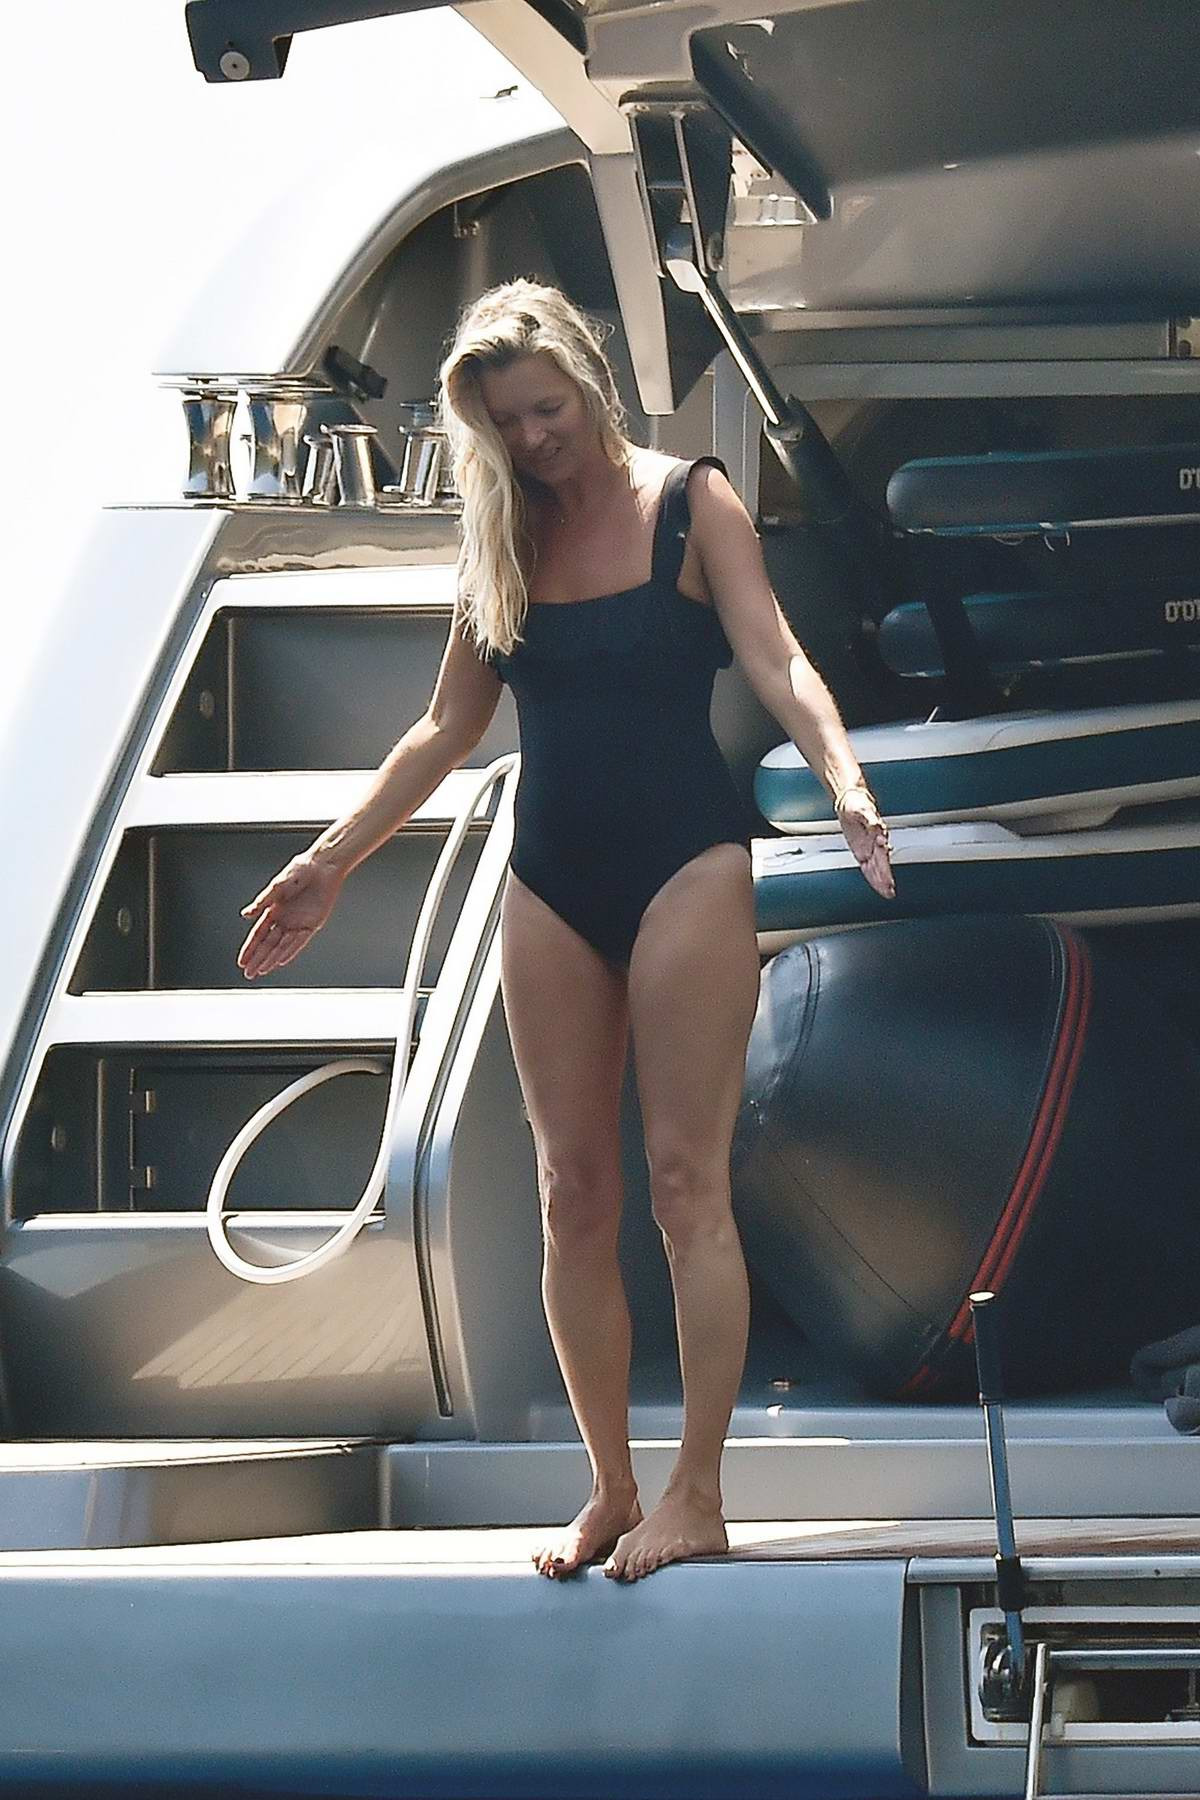 Kate Moss wears a black swimsuit enjoying her time on a yacht in Portofino, Italy